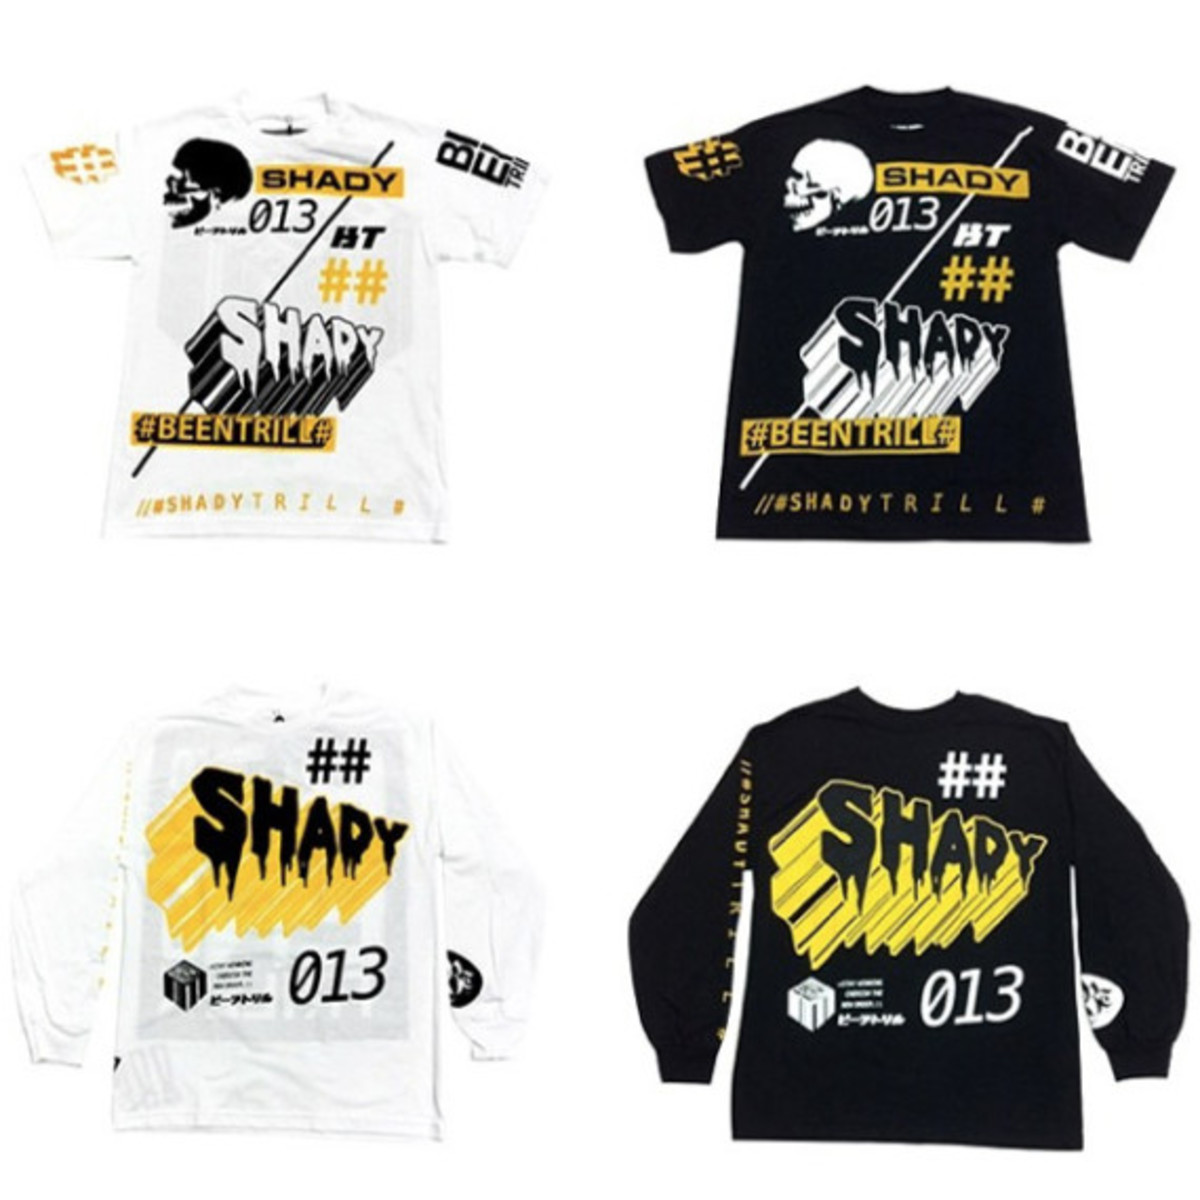 BEEN TRILL x Shady Records - #SHADYTRILL# Collection - 0